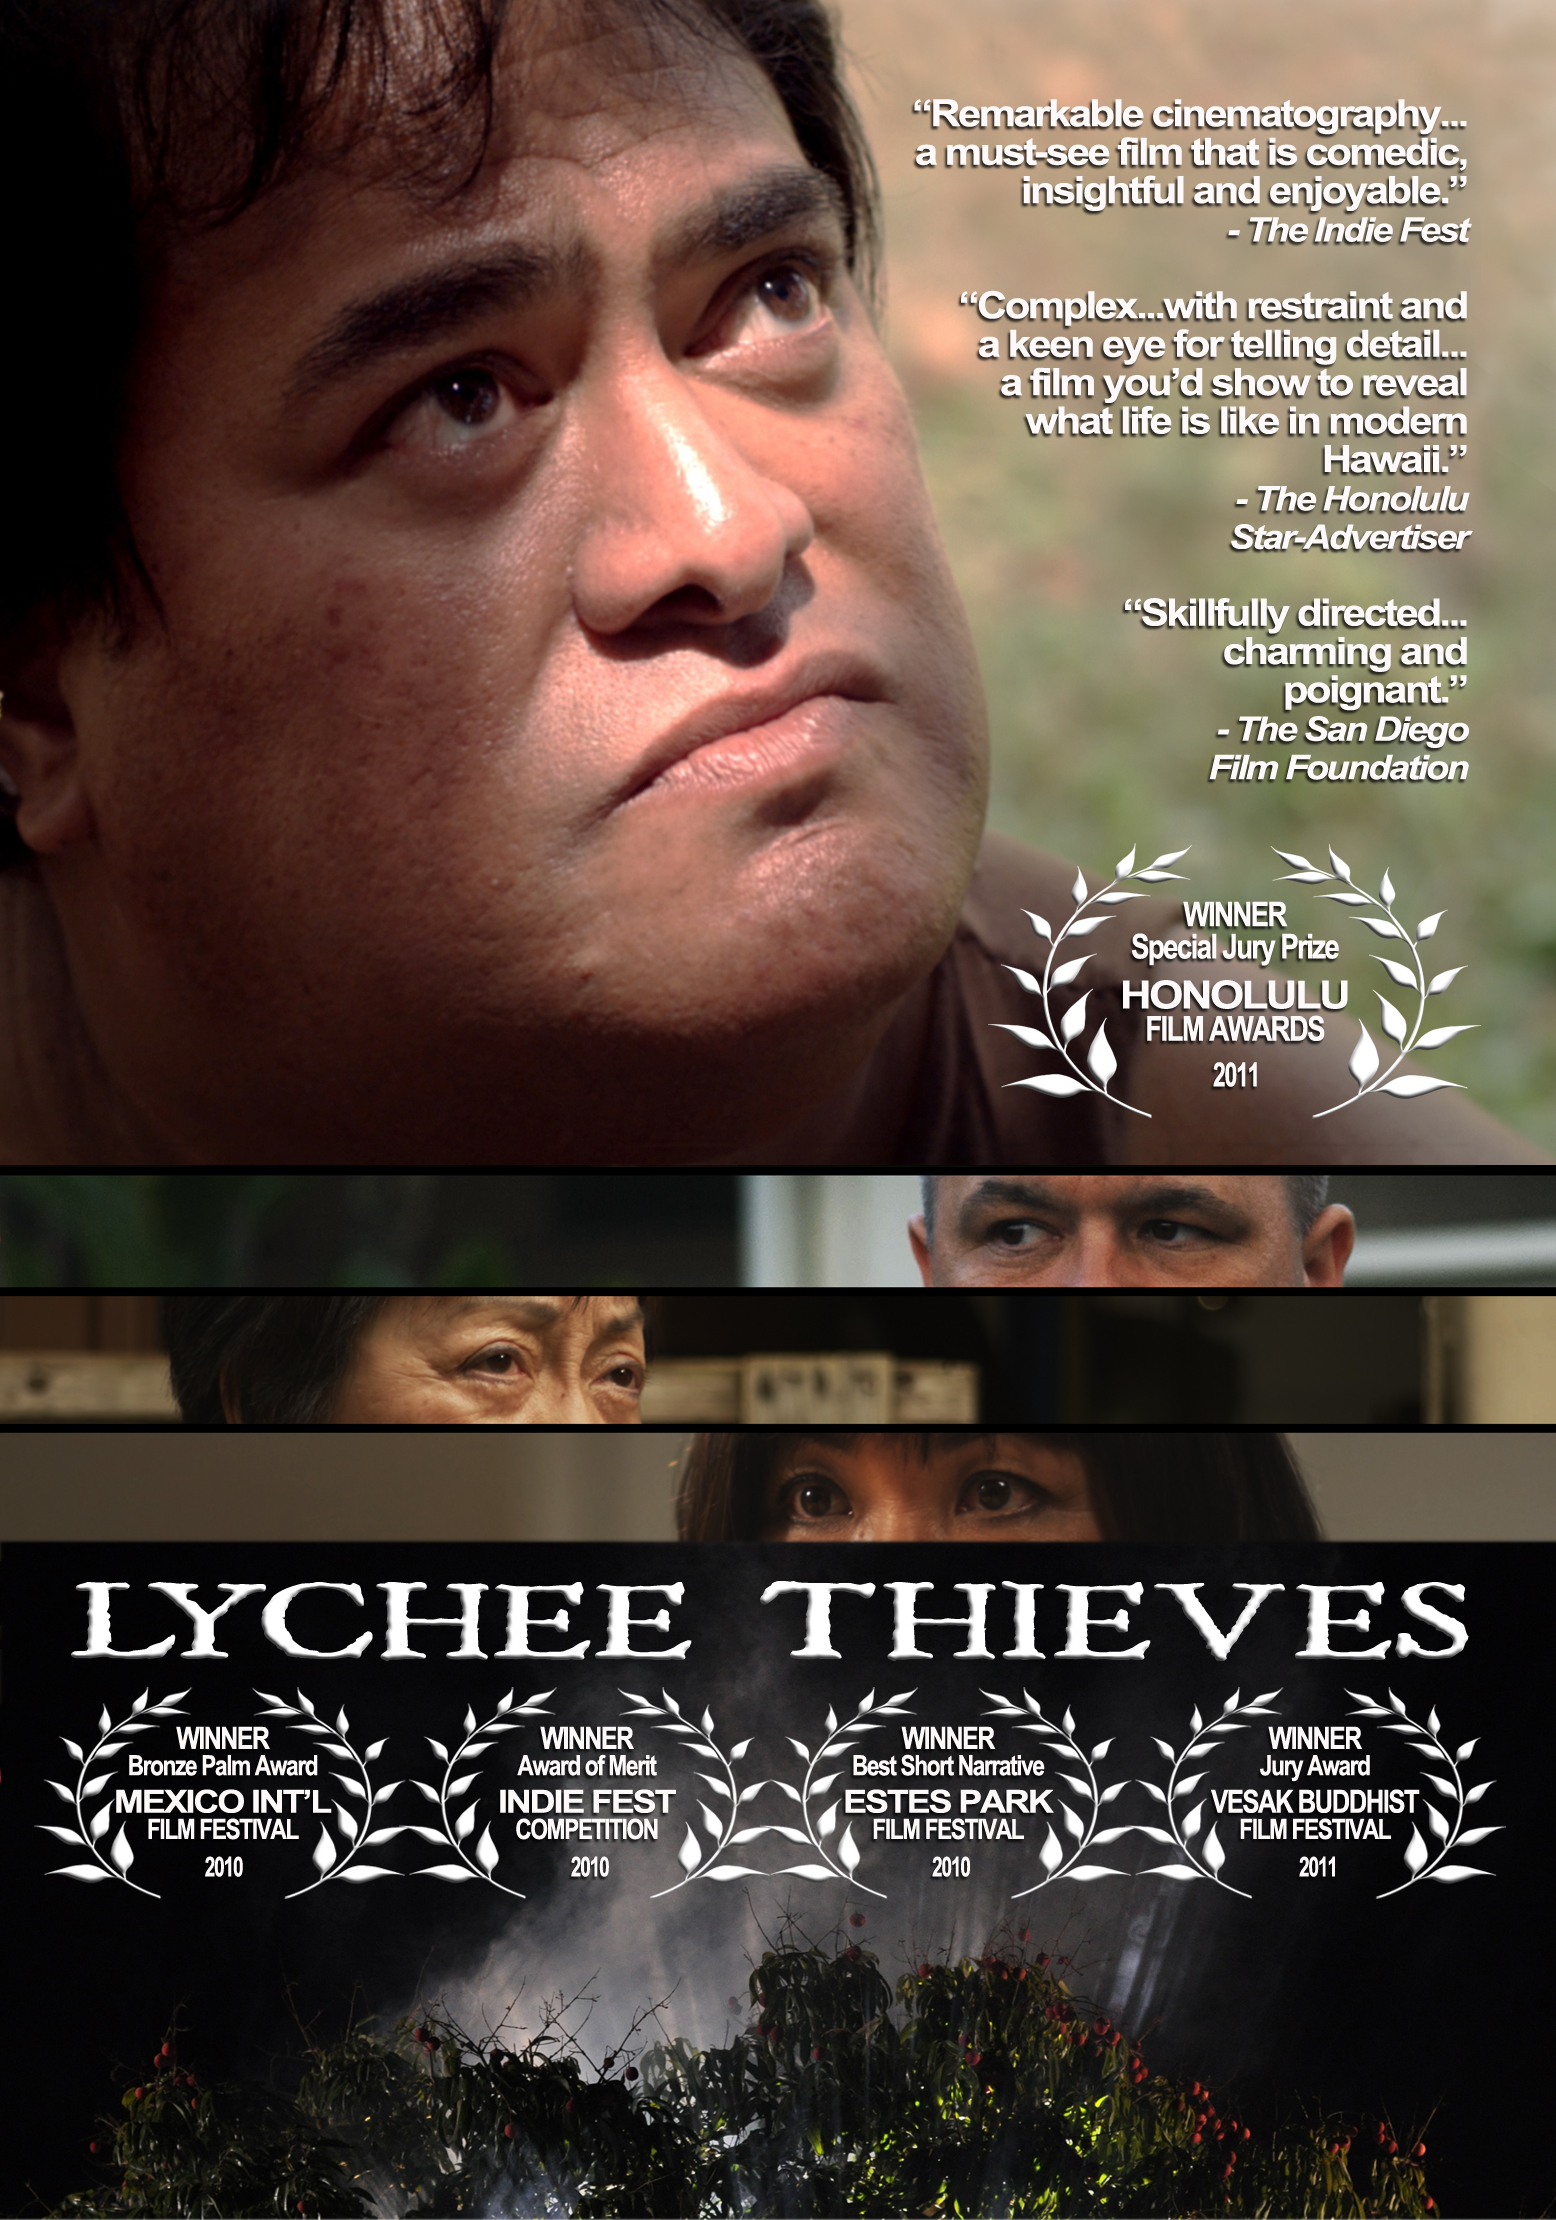 "Lychee Thieves - It's lychee season and Arnie and Ethel have a magnificent lychee tree that everybody in the neighborhood is salivating over, but they're determined to keep the fruit all to themselves. Their neighbor, Mrs. Chun, believes the branches hanging over her fence belong to her, but has a foreboding dream about the fate of the tree. Meanwhile, local fruit picker Keoki gets ready to pick the lychee ""the island way.""Lychee Thieves explores the humorous and sometimes contentious interactions among the culturally and ethically diverse people of Hawai'i, prompting longtime local critic Burl Burlingame to describe it as"